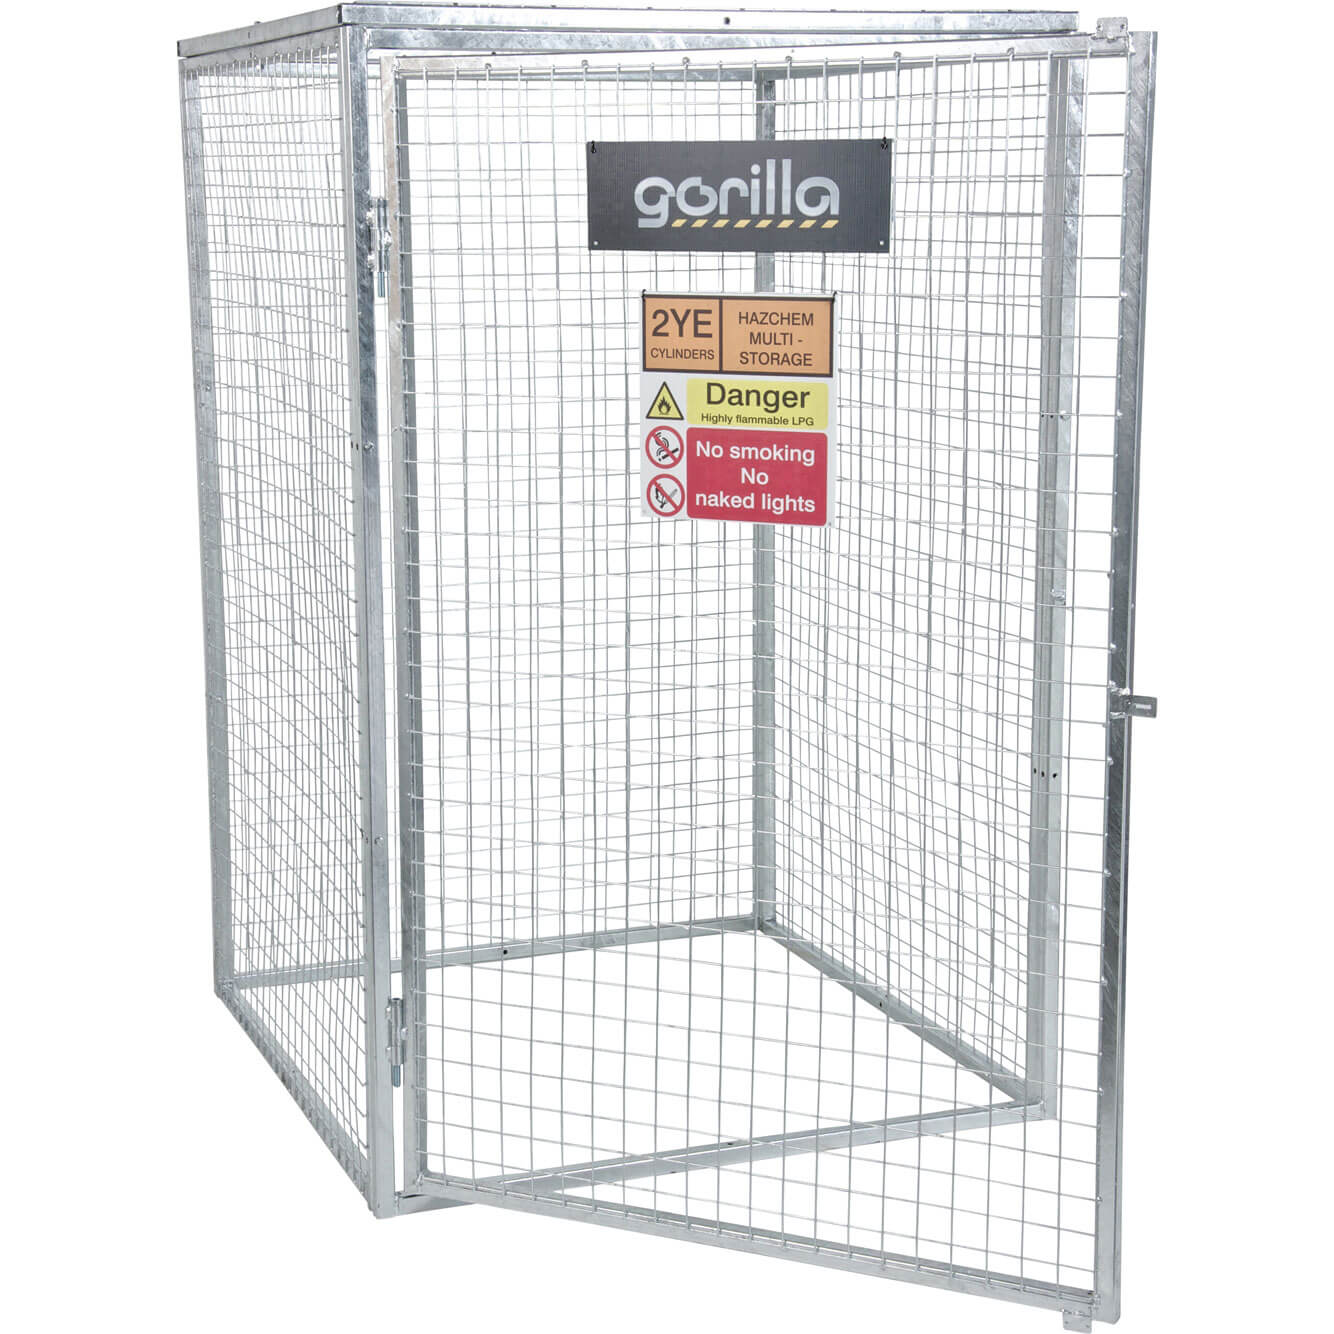 Armorgard Gorilla Bolt Together Gas Cylinder Cage 1200mm x 1200mm x 1800mm